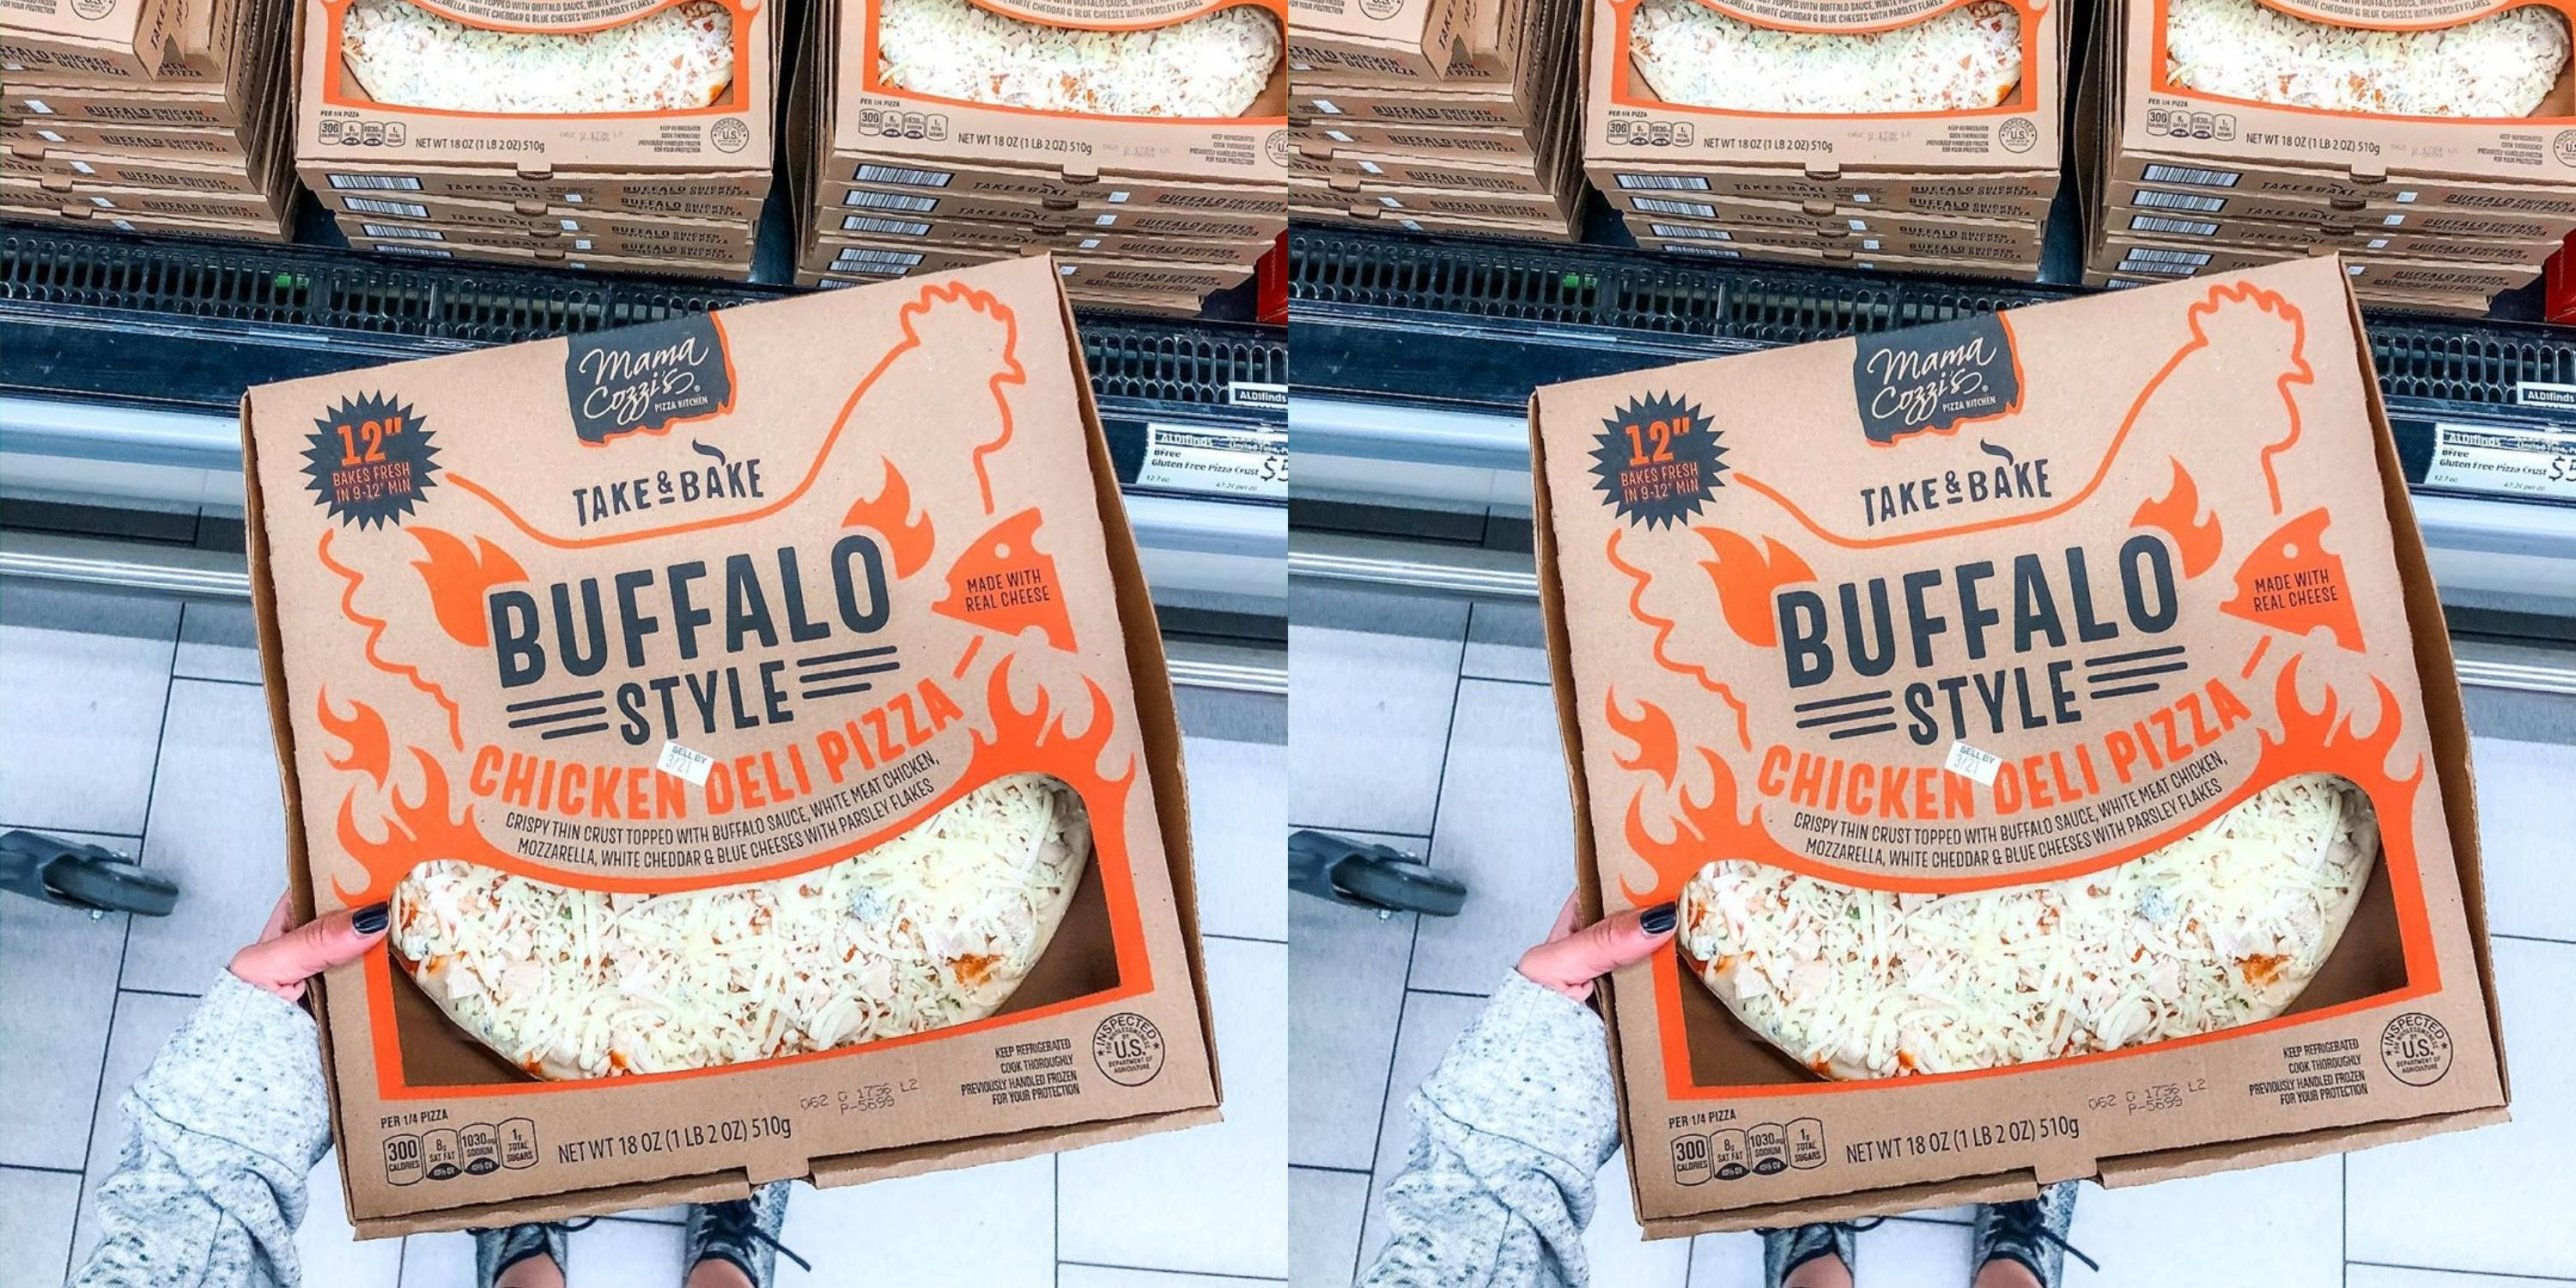 Aldi Is Selling Buffalo Chicken Pizza Covered In Sauce And Cheese